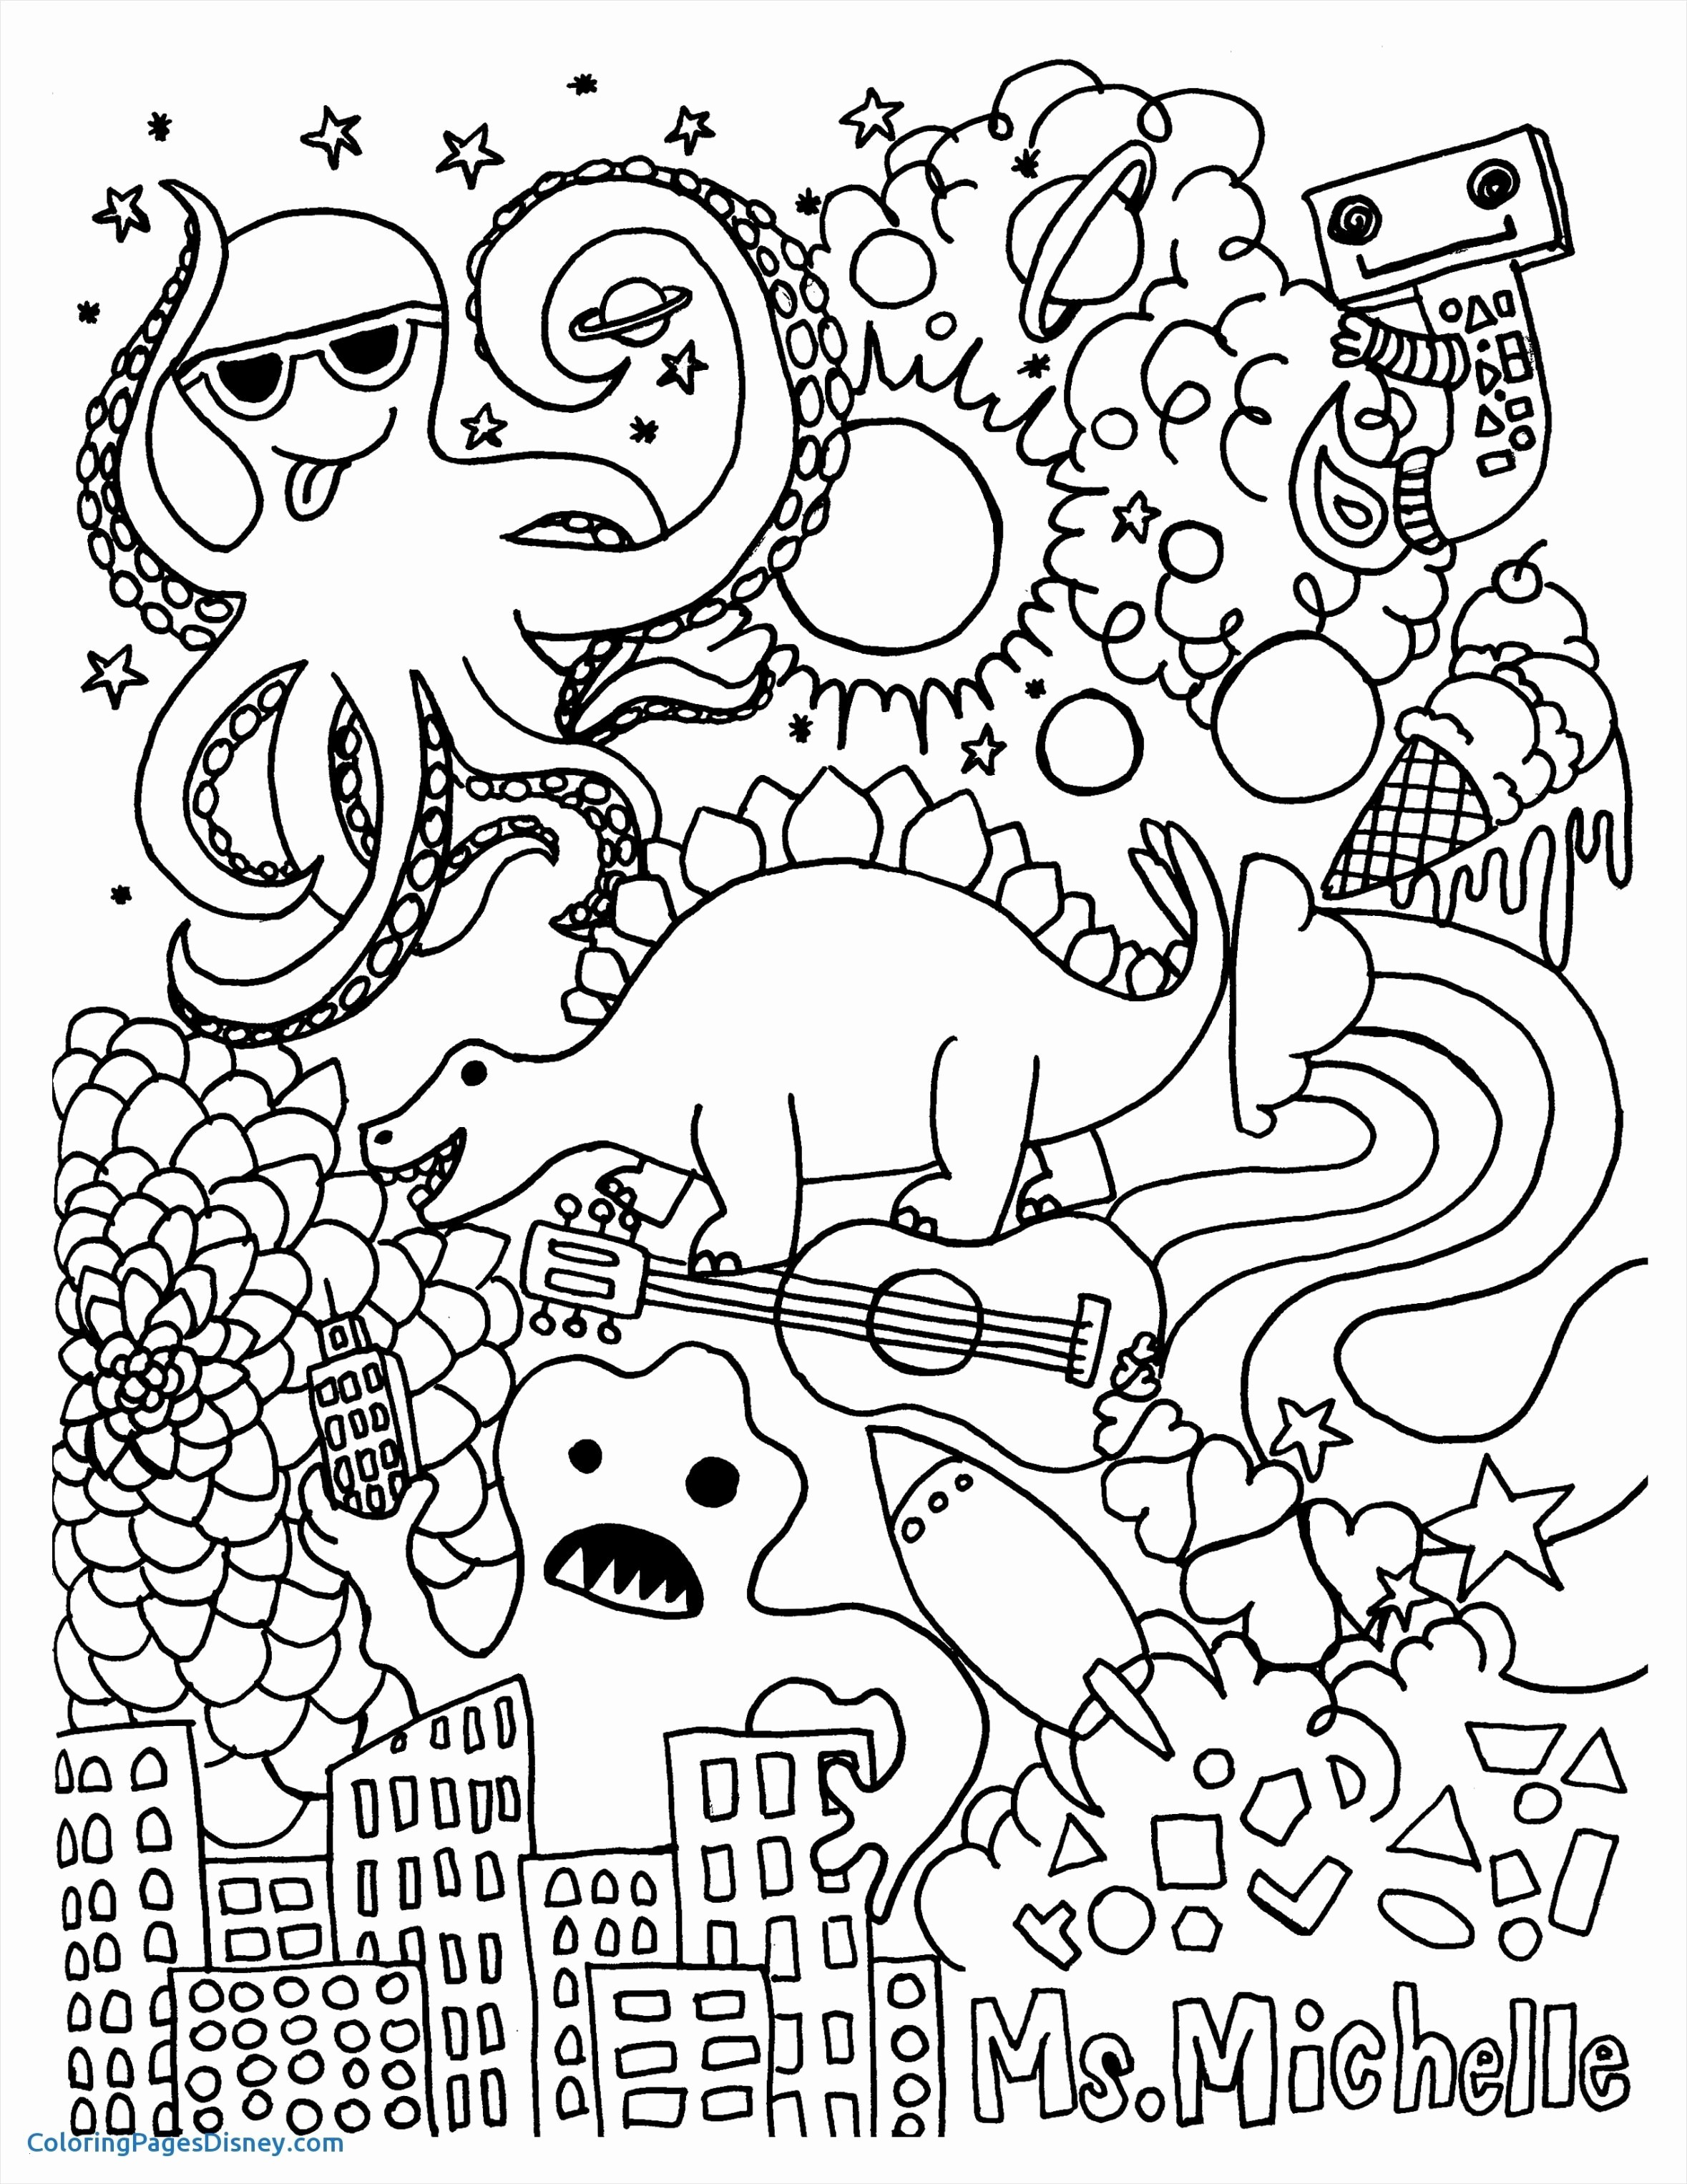 Oriental Trading Coloring Pages Oriental Trading Company Coloring Pages New Halloween Coloring